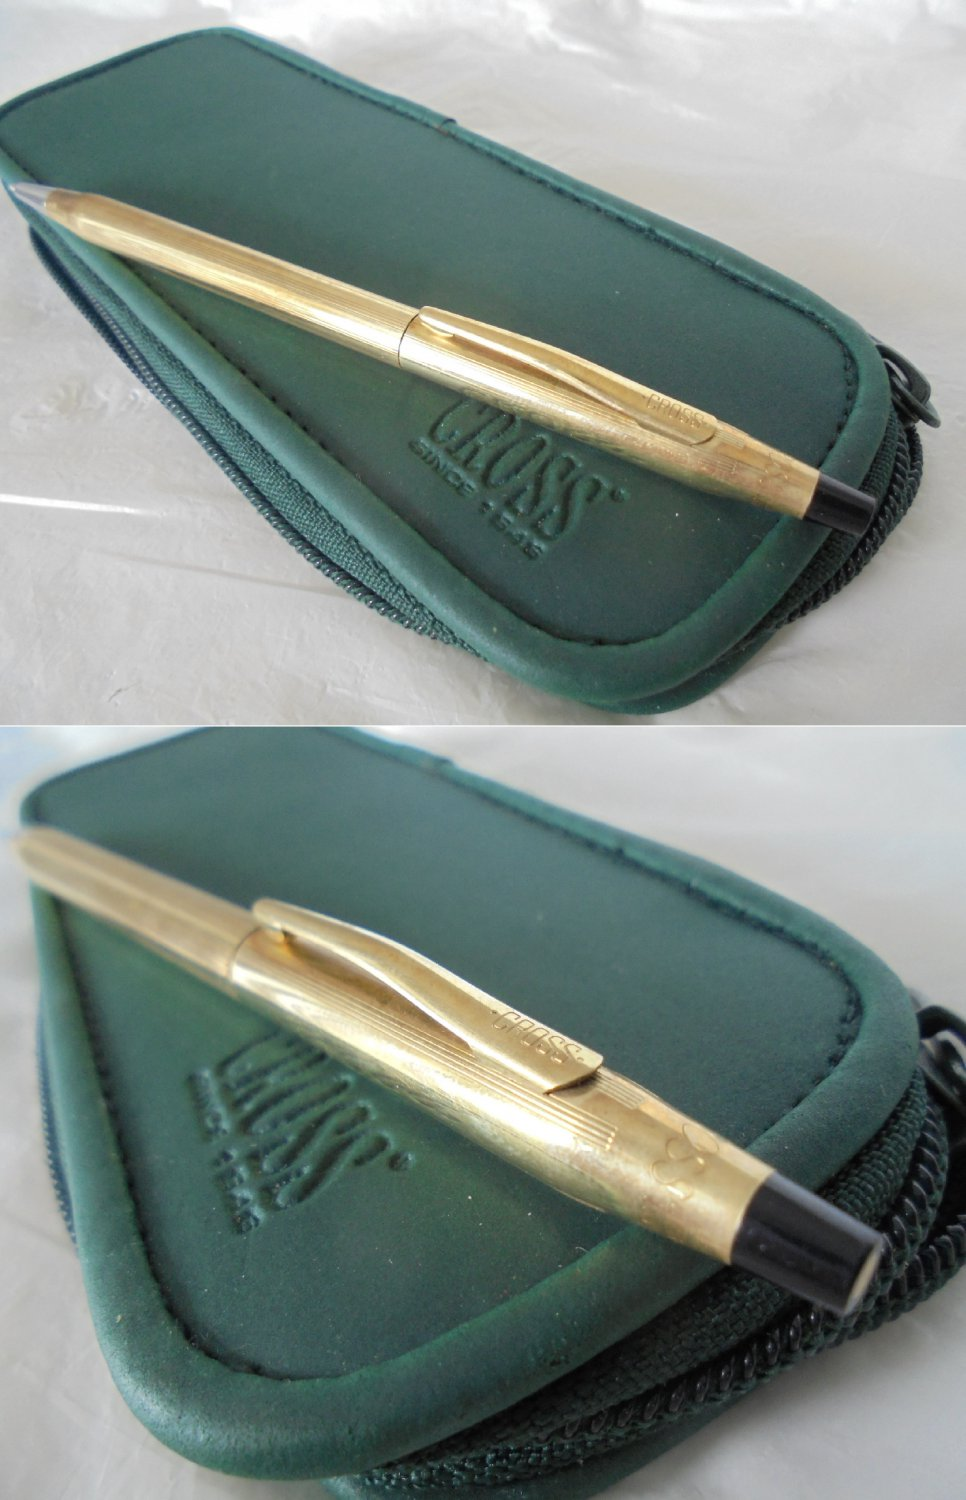 CROSS CLASSIC CENTURY ball pen in gold filed 10KT Original in gift box